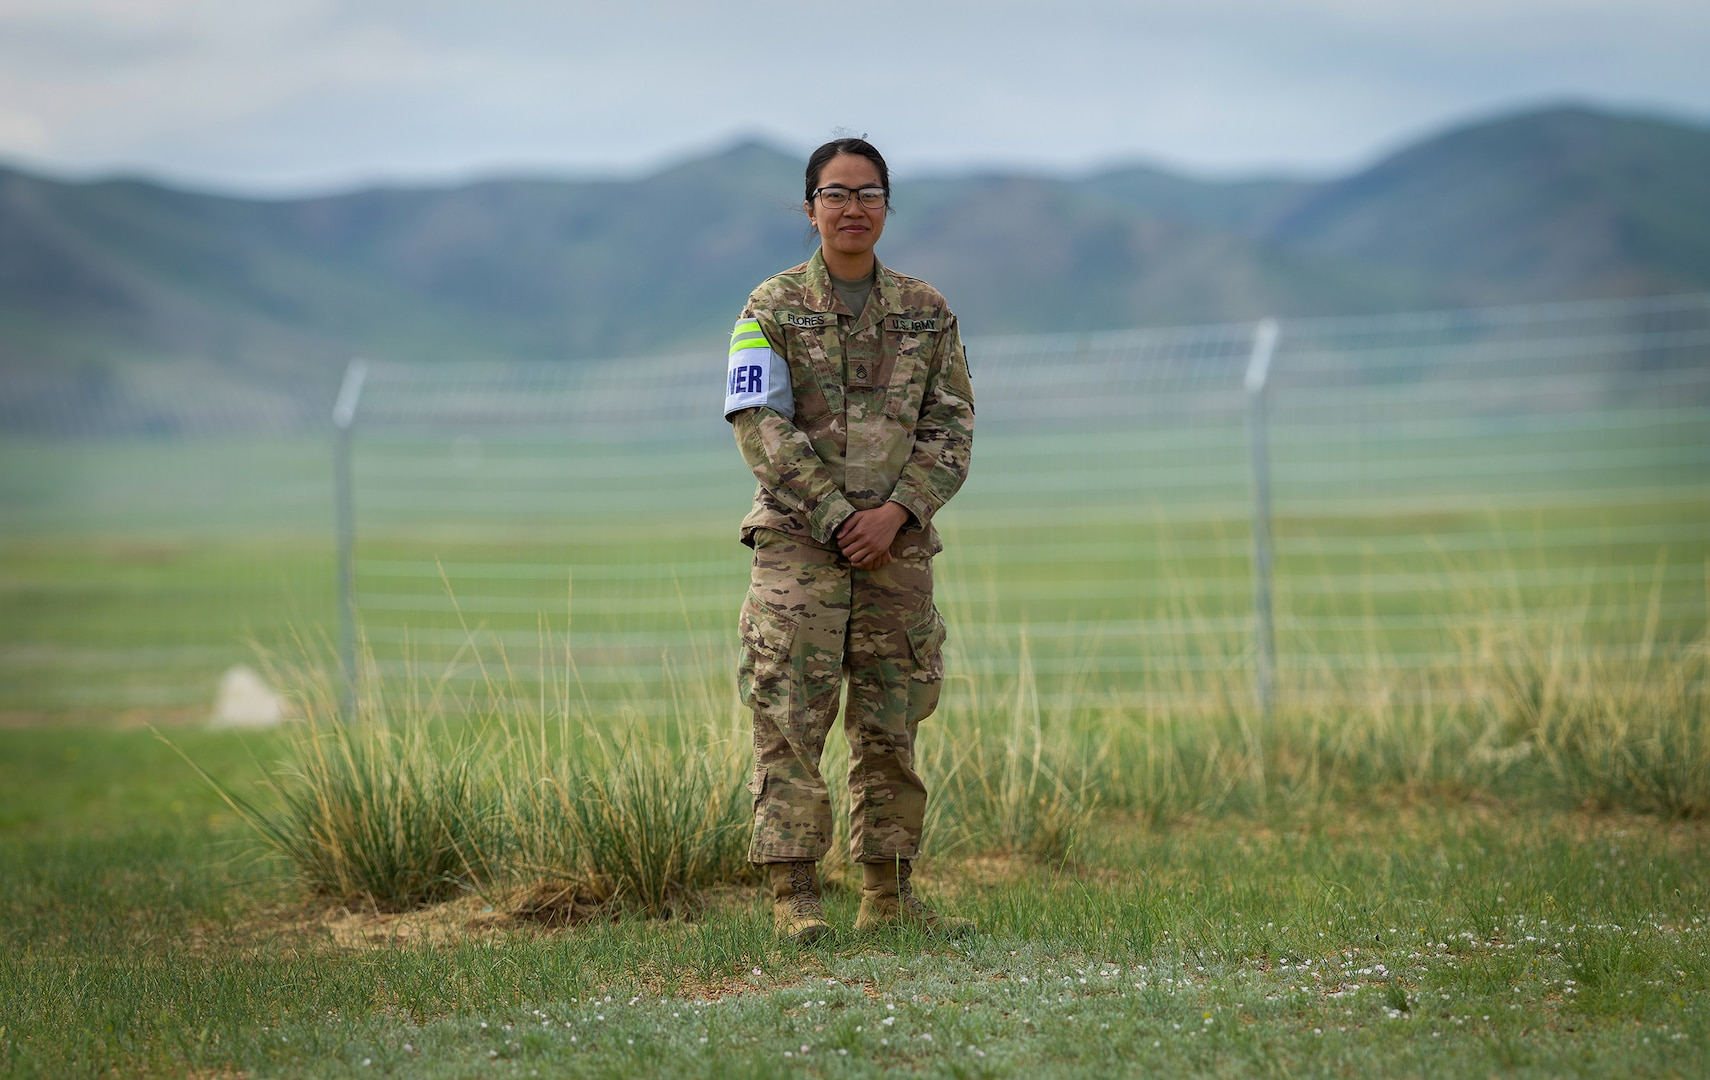 U.S. Army Service Member Participates in International Exercise